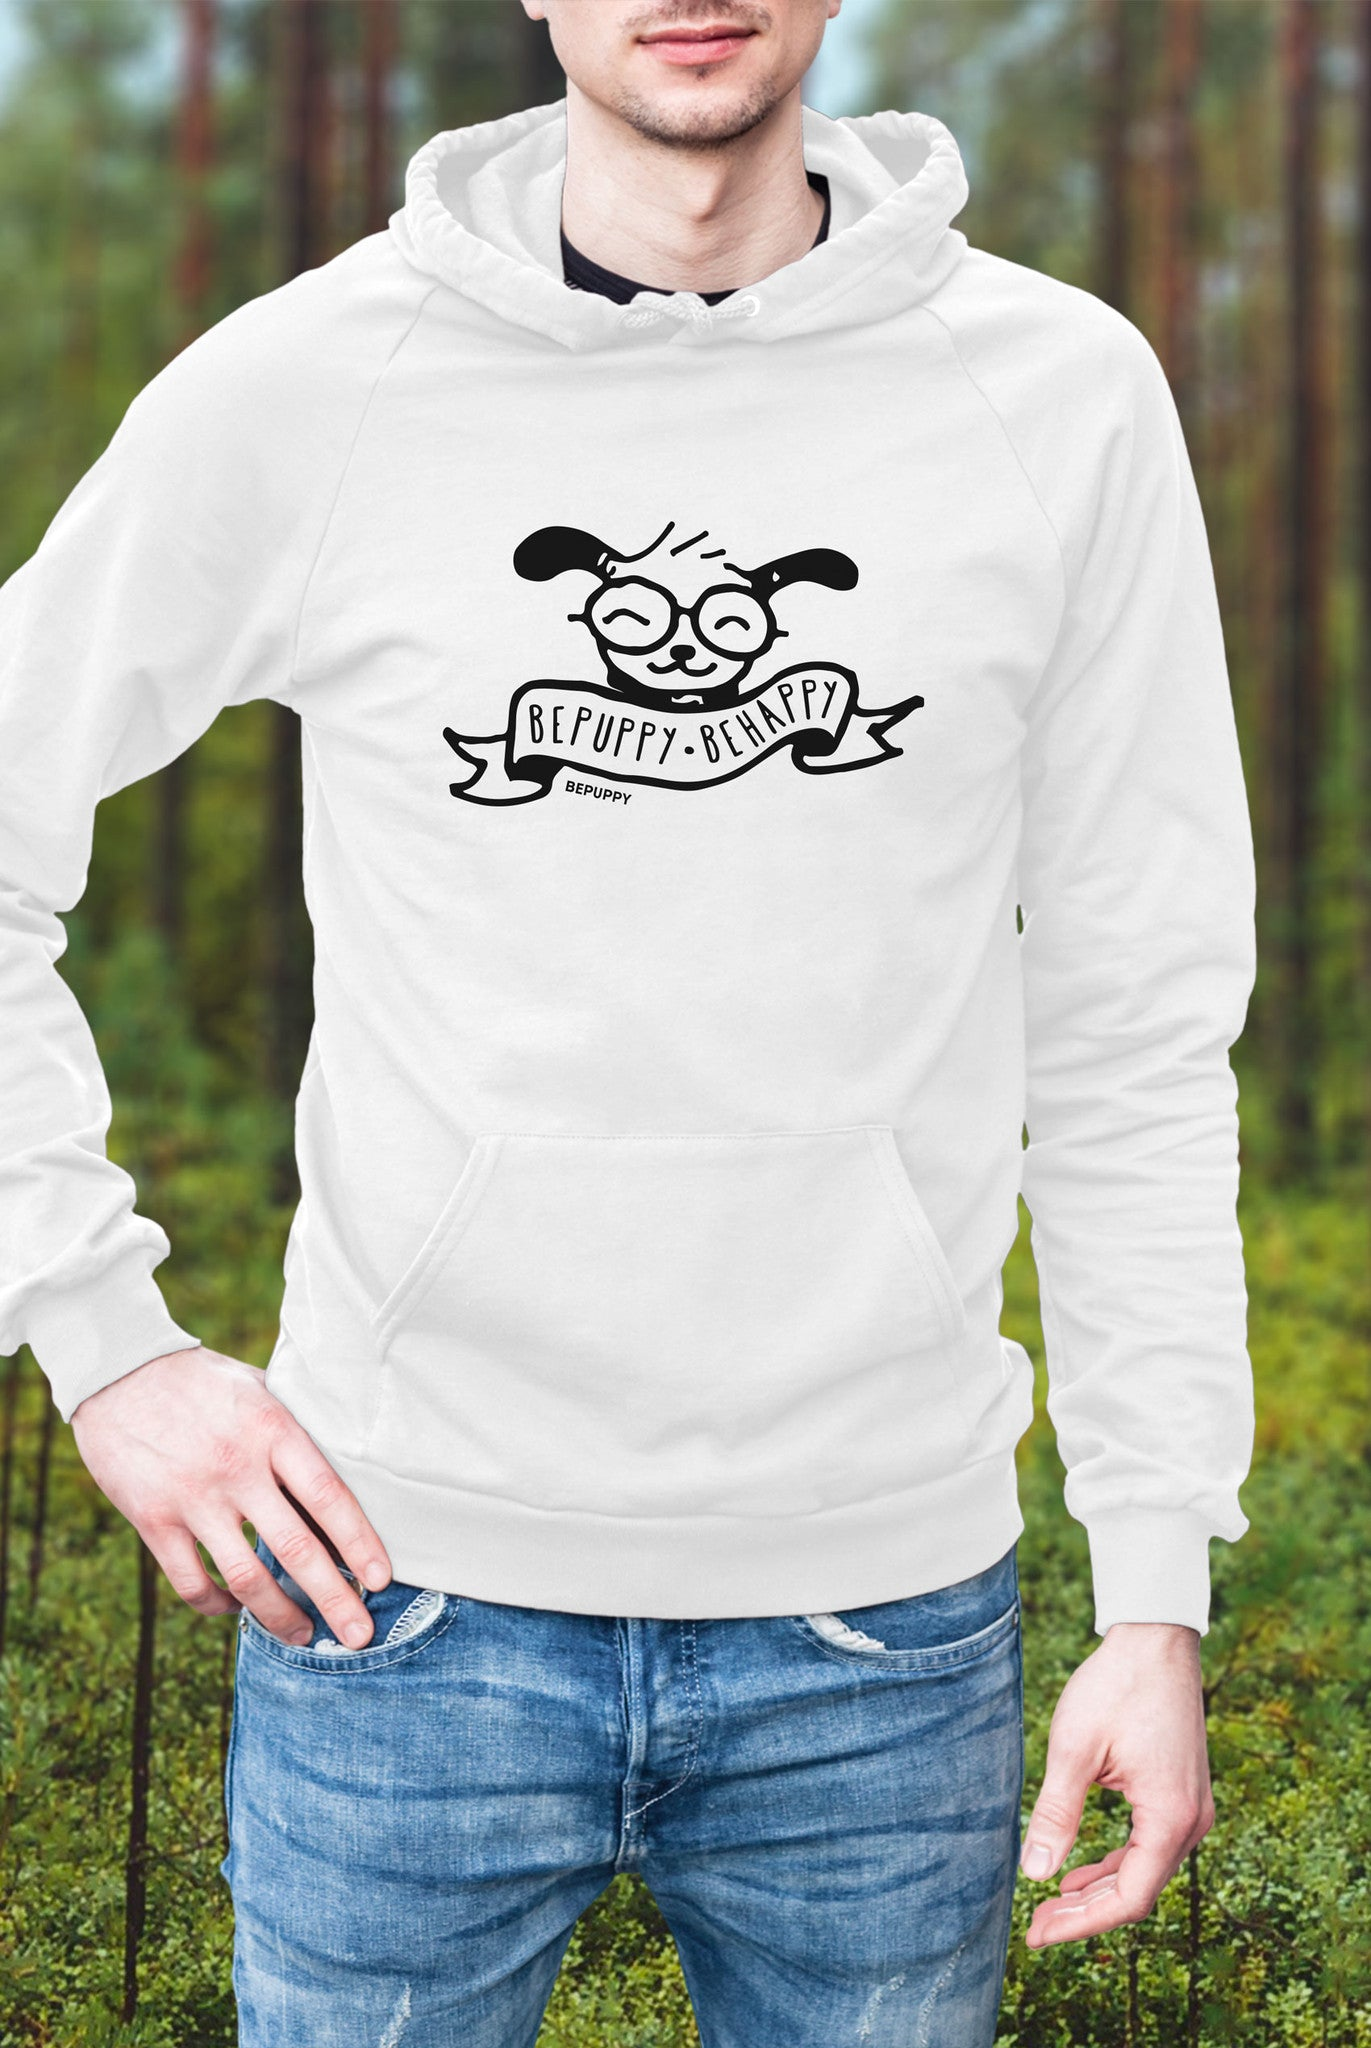 Pullover Hoodies, bepuppy be happy! - BEPUPPY